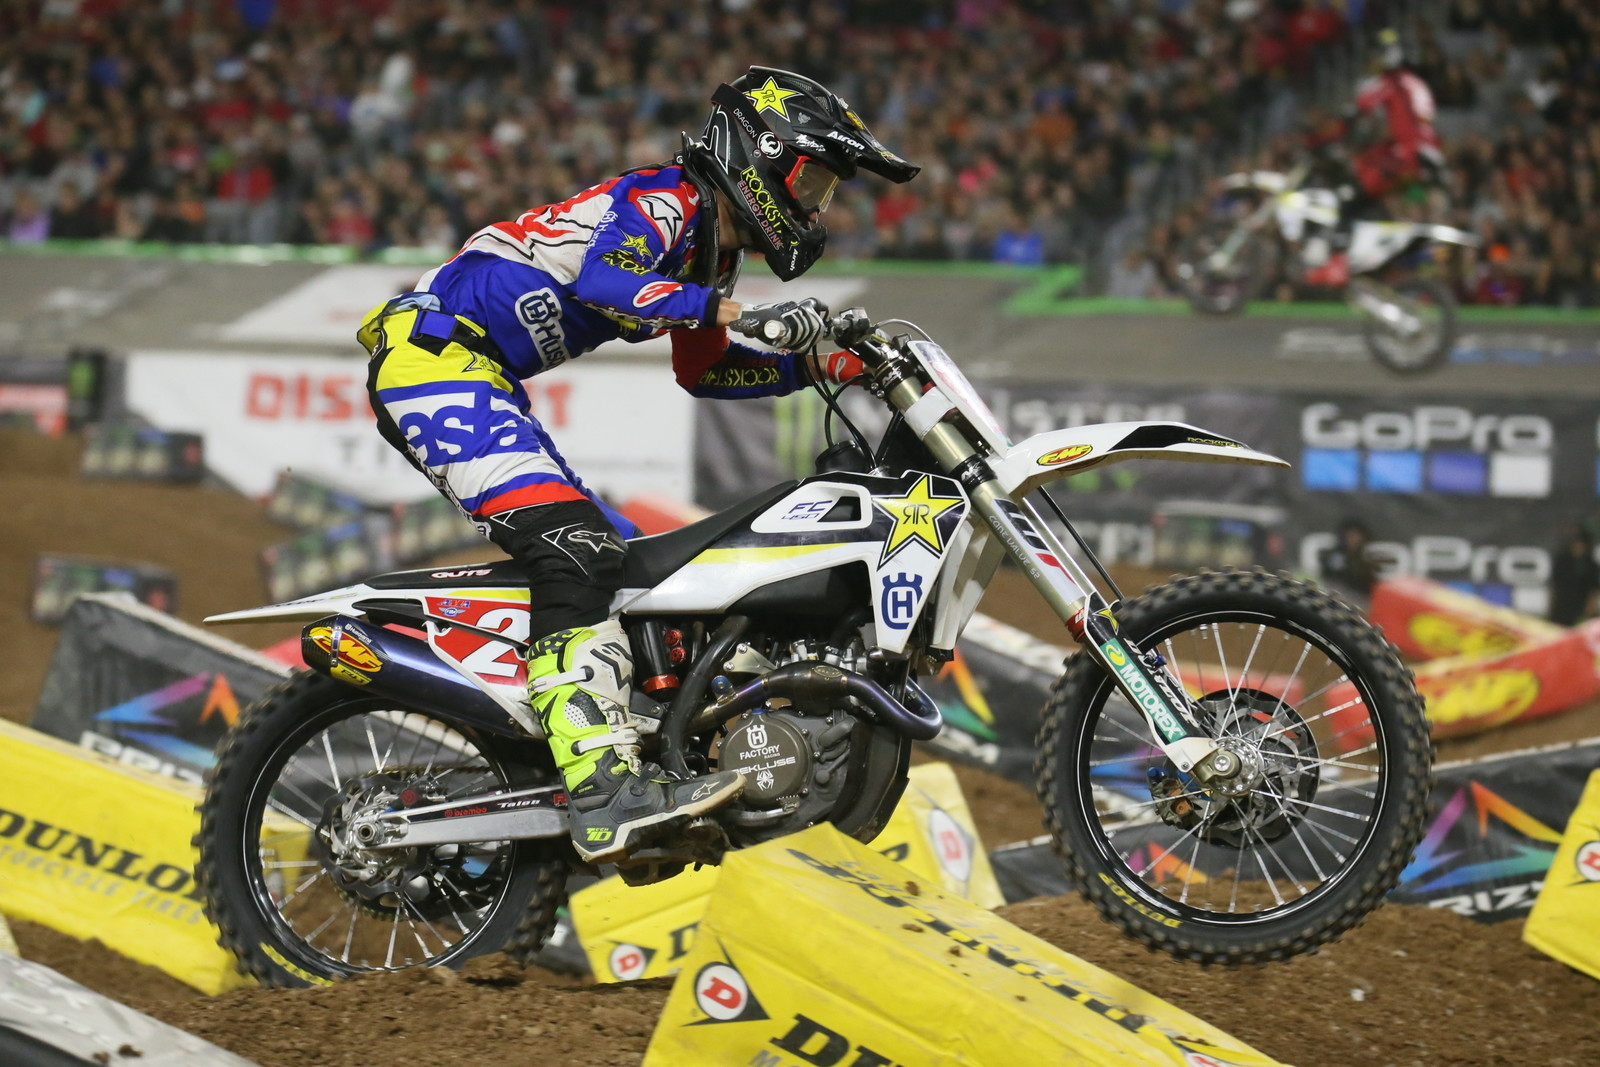 Jason Anderson looked to be riding tight and made several mistakes early in the Main Event, but he came back towards the end and finished fourth.